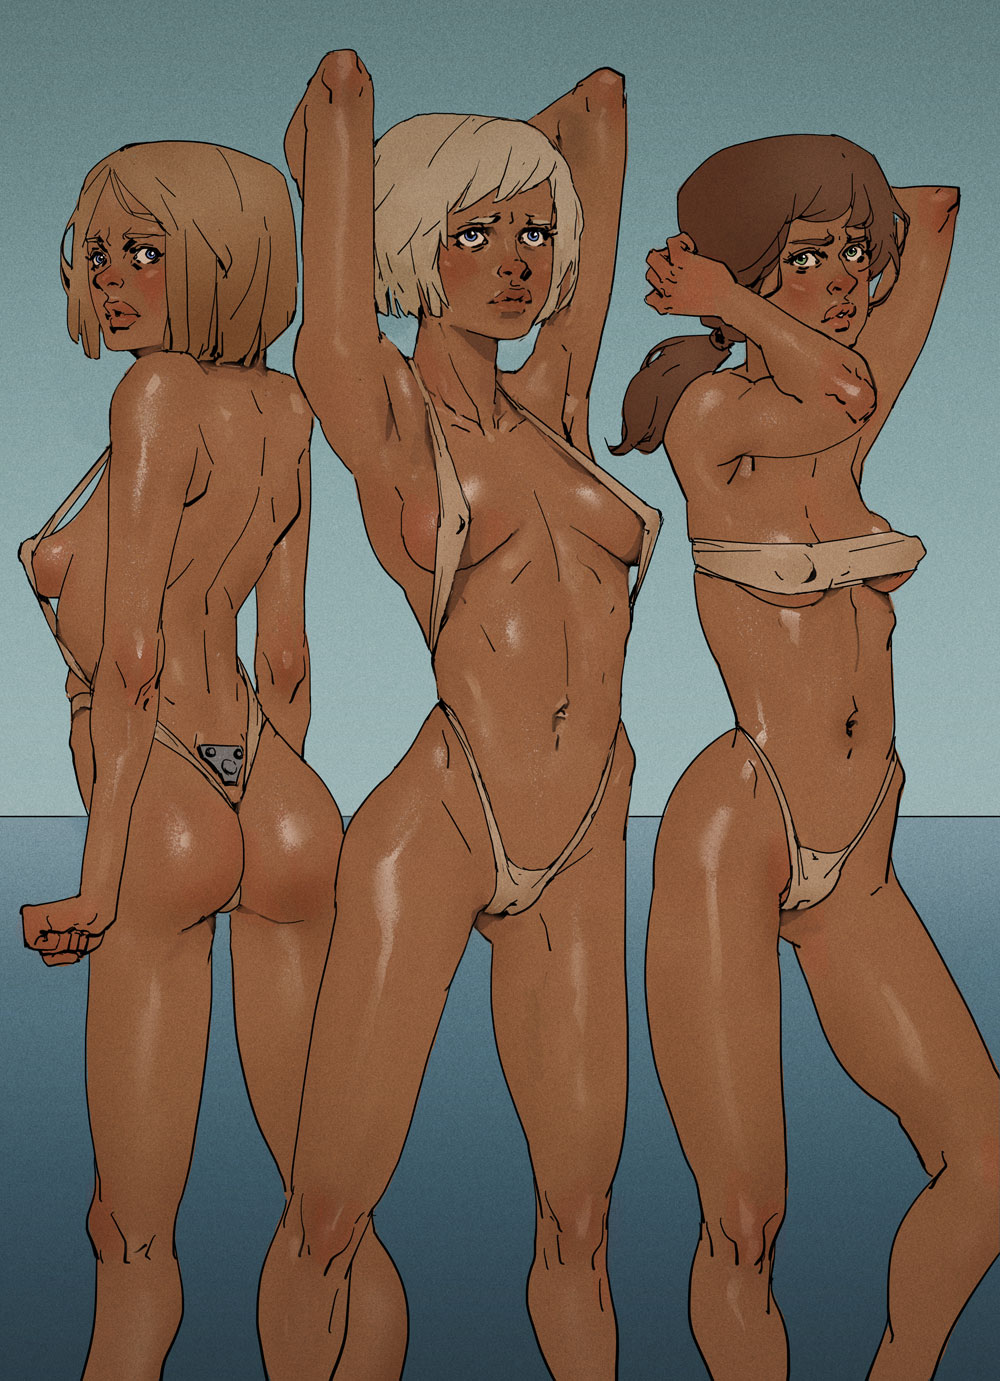 three_girls_ytjntiyniynt